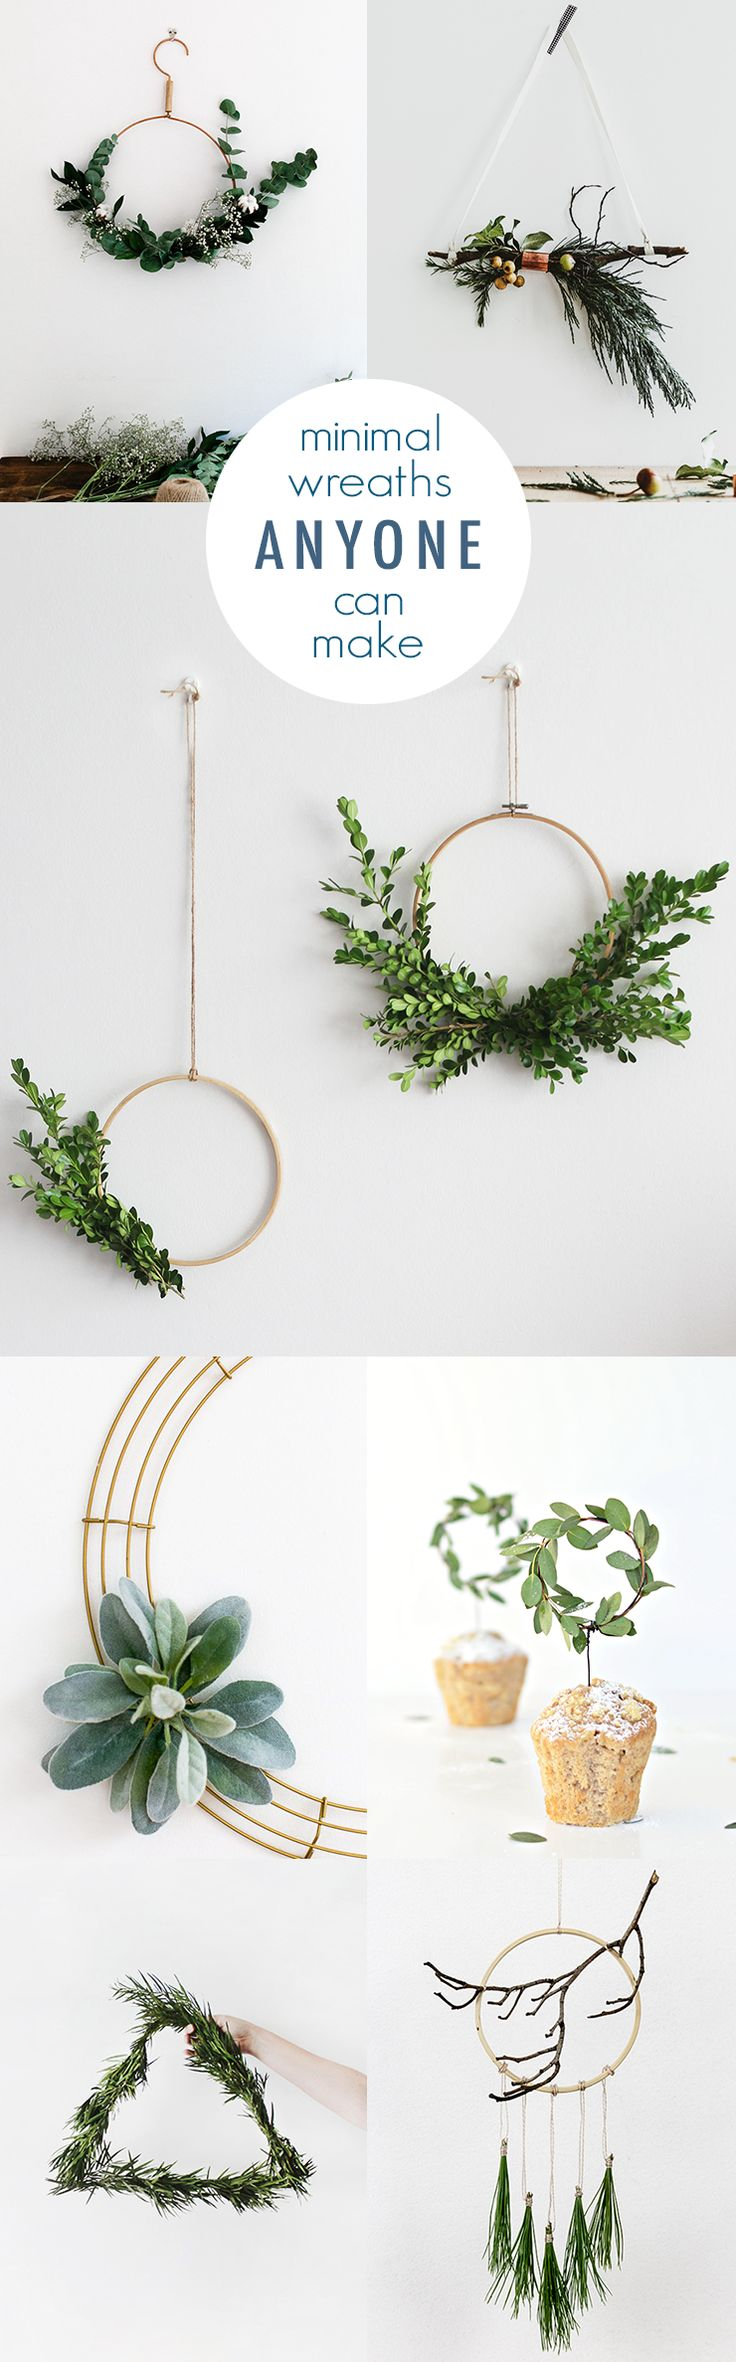 Minimal DIY Wreath Ideas @idlehandsawake